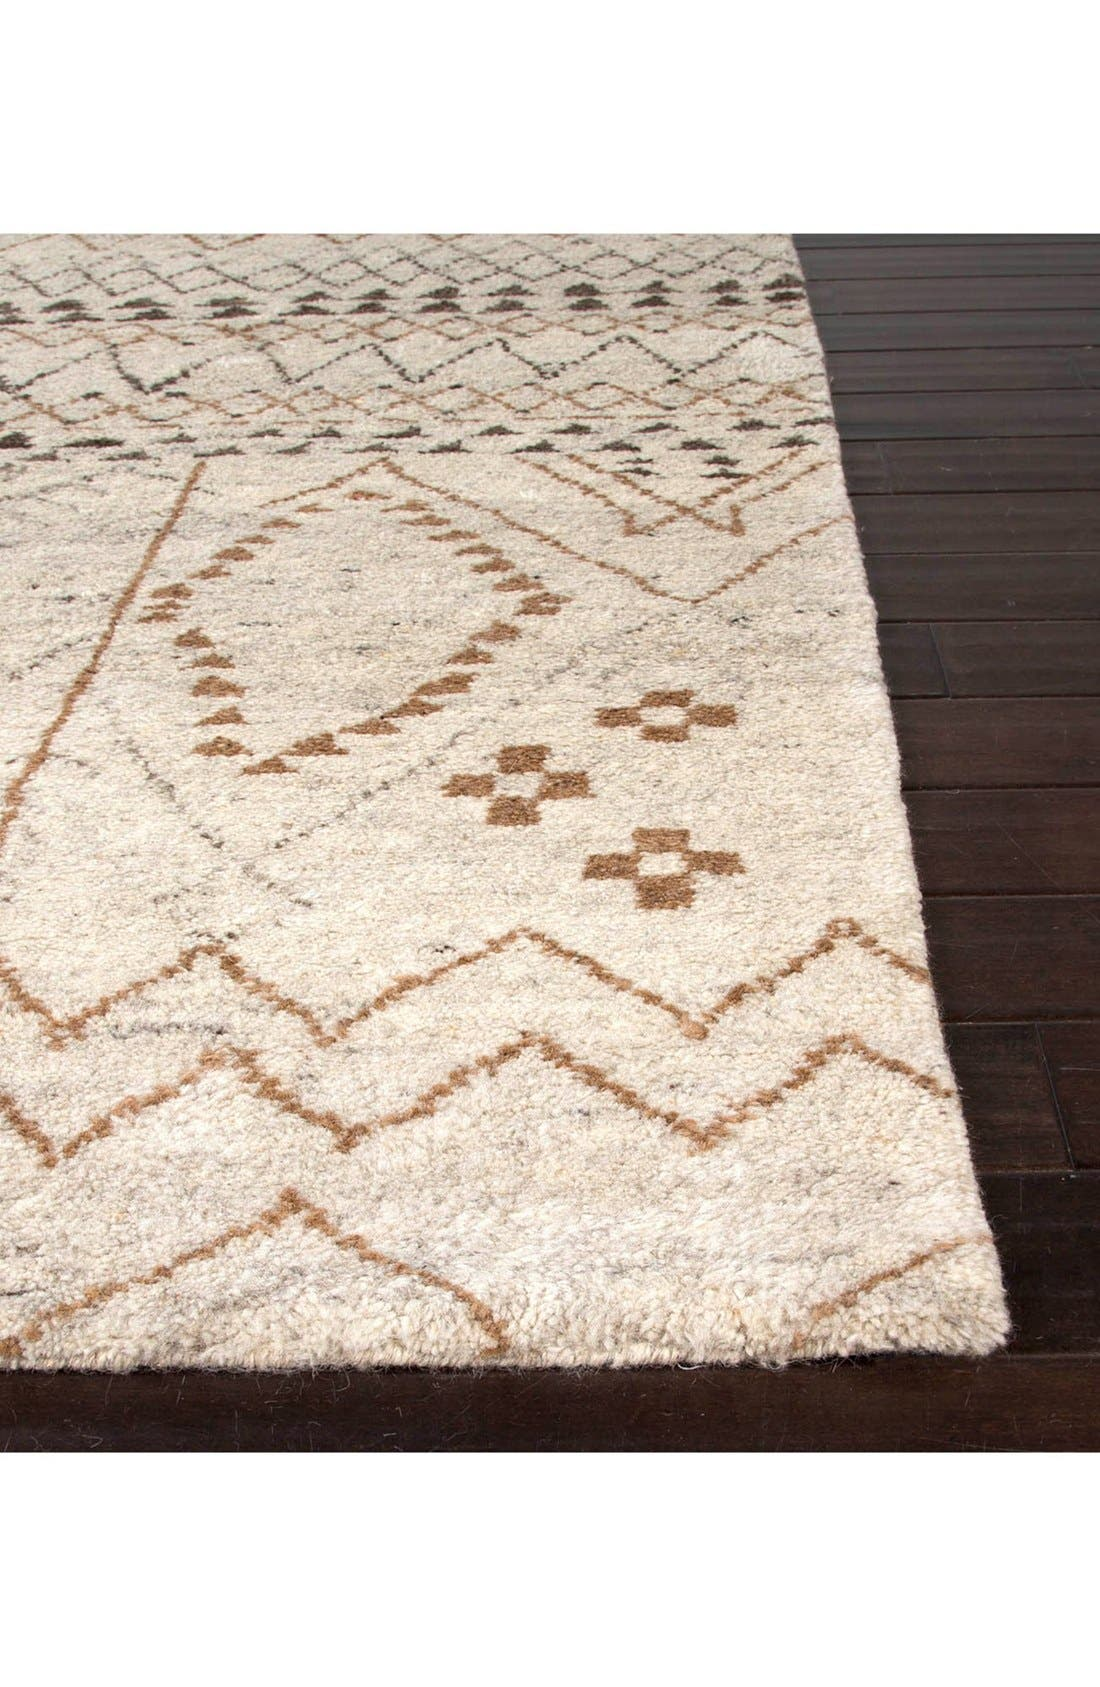 'Zola Zag' Wool Area Rug,                             Alternate thumbnail 2, color,                             Ivory/ Taupe